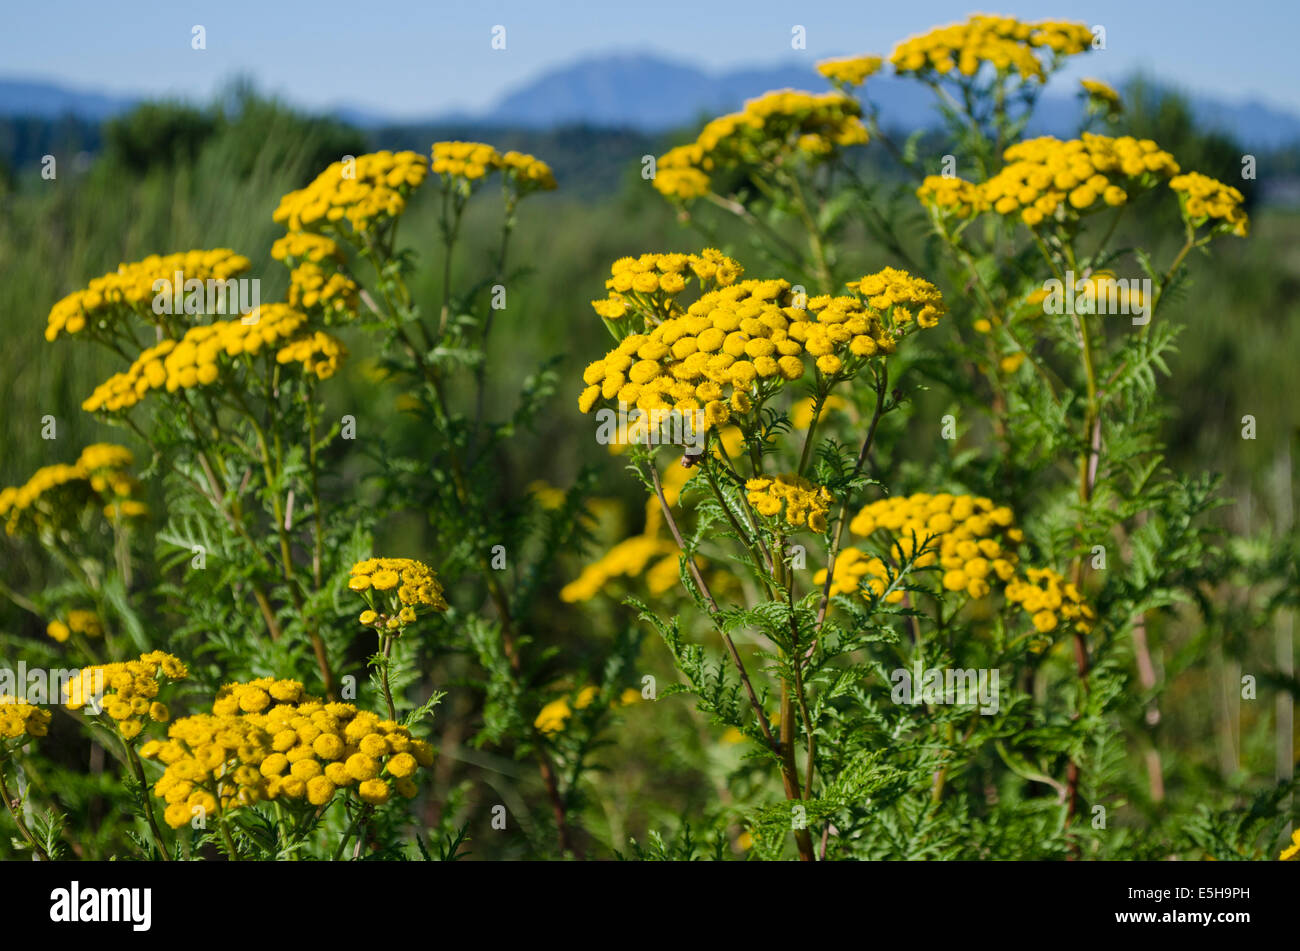 Invasive Weed Stock Photos Invasive Weed Stock Images Alamy